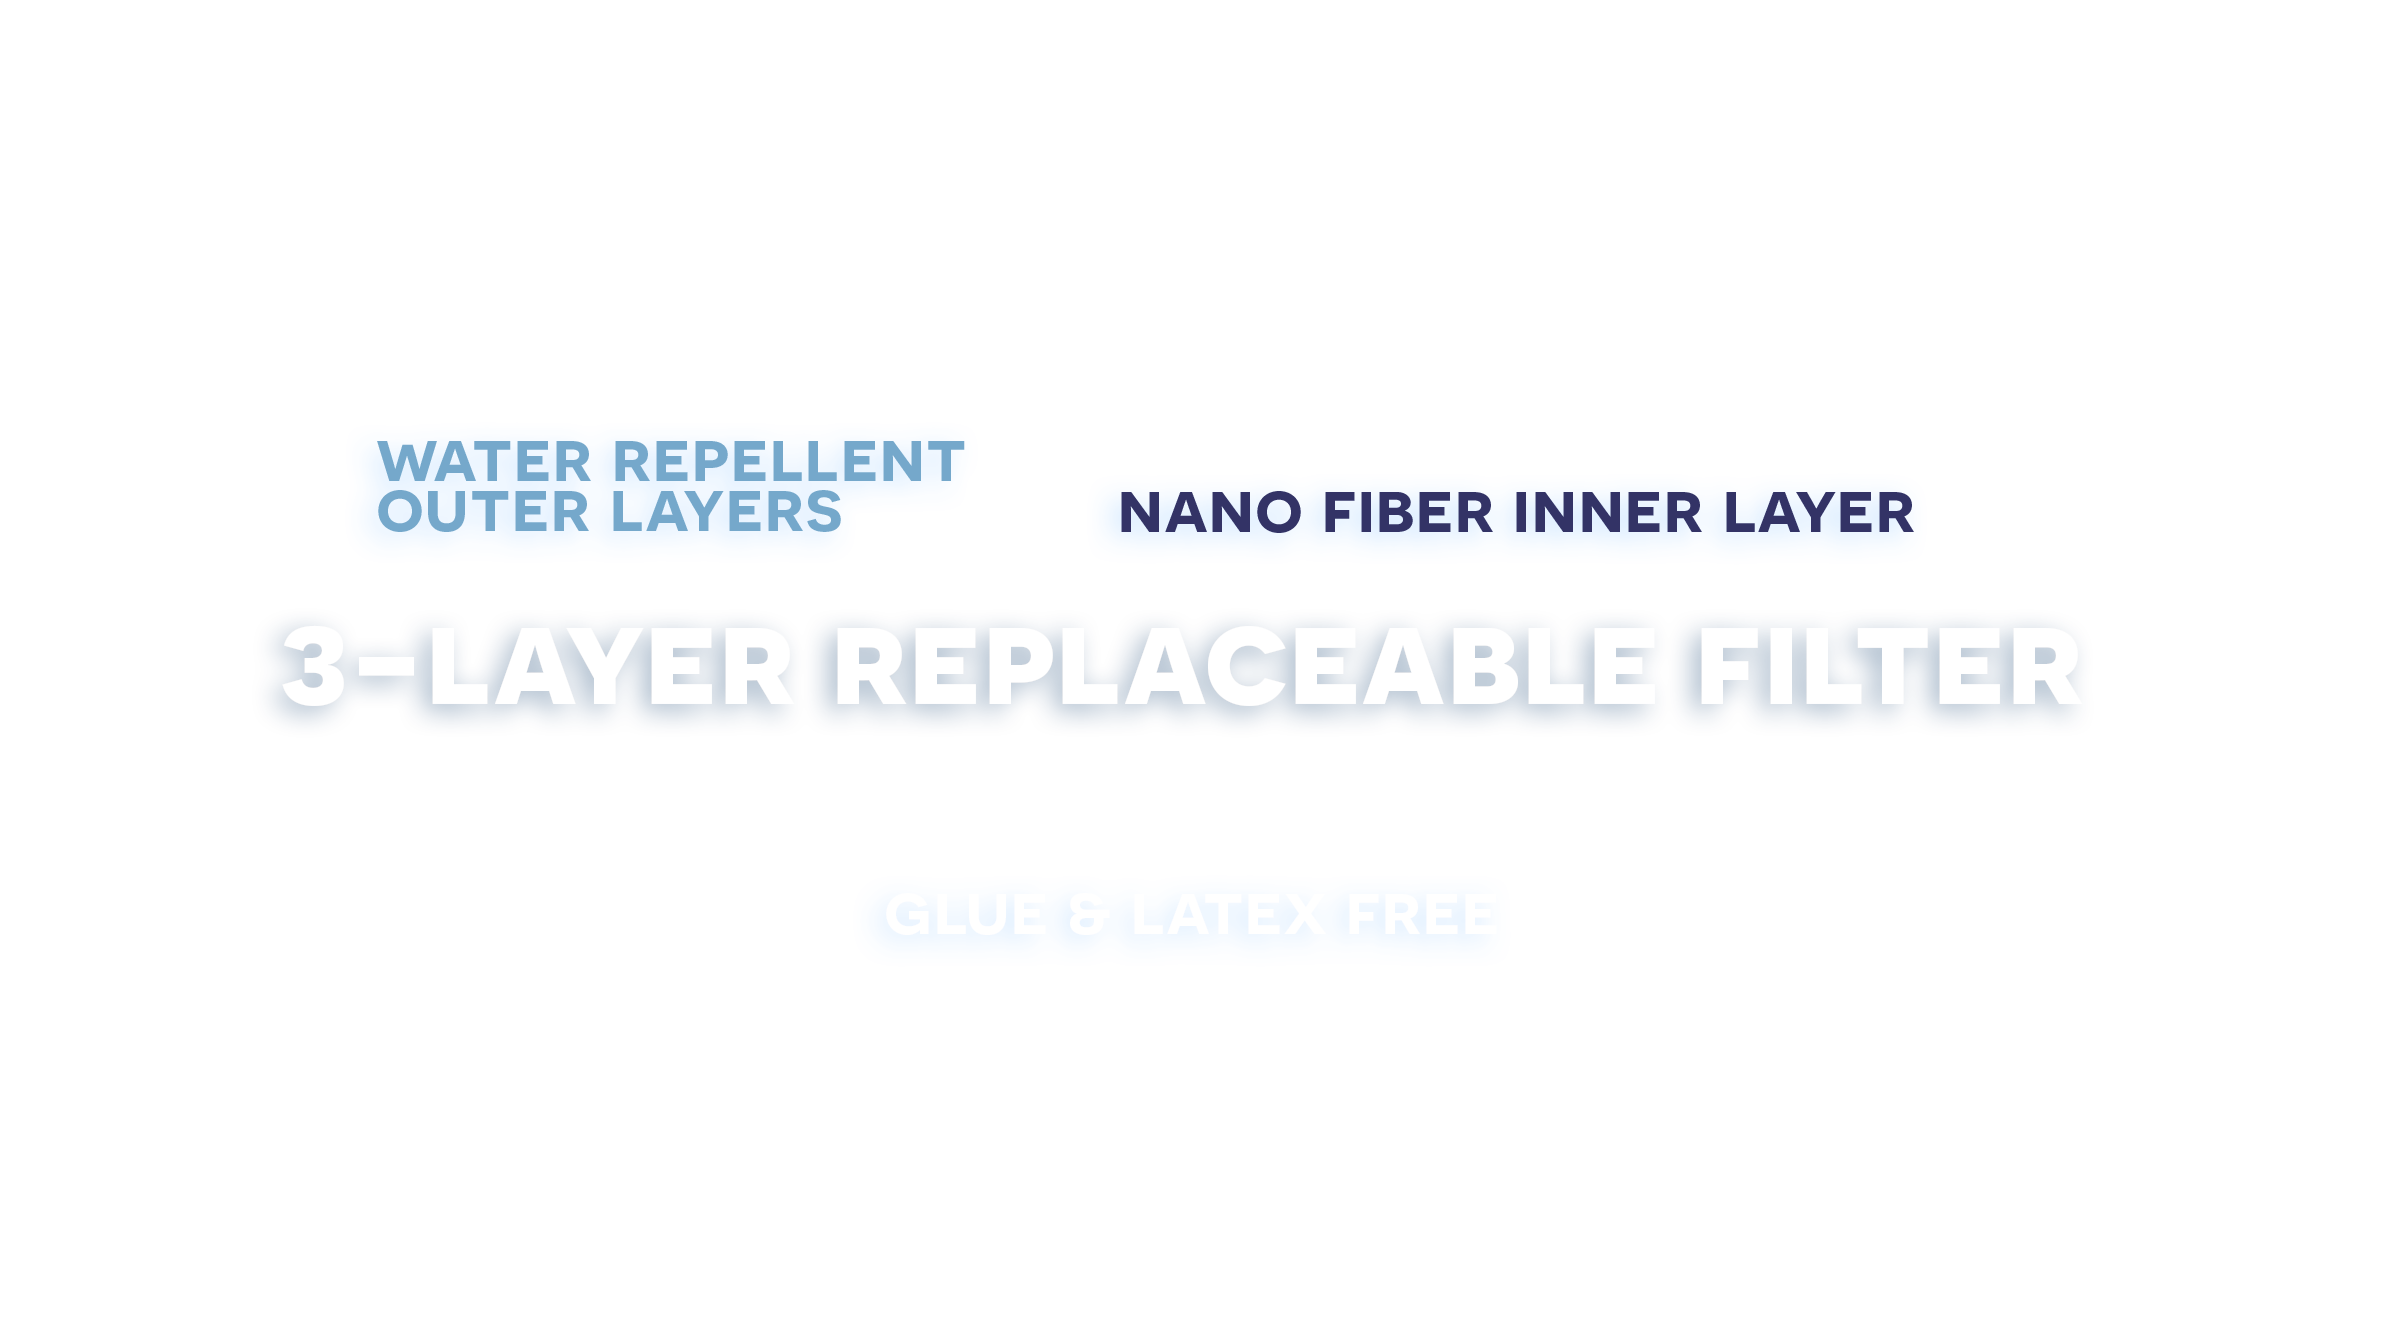 3-layer replaceable filter